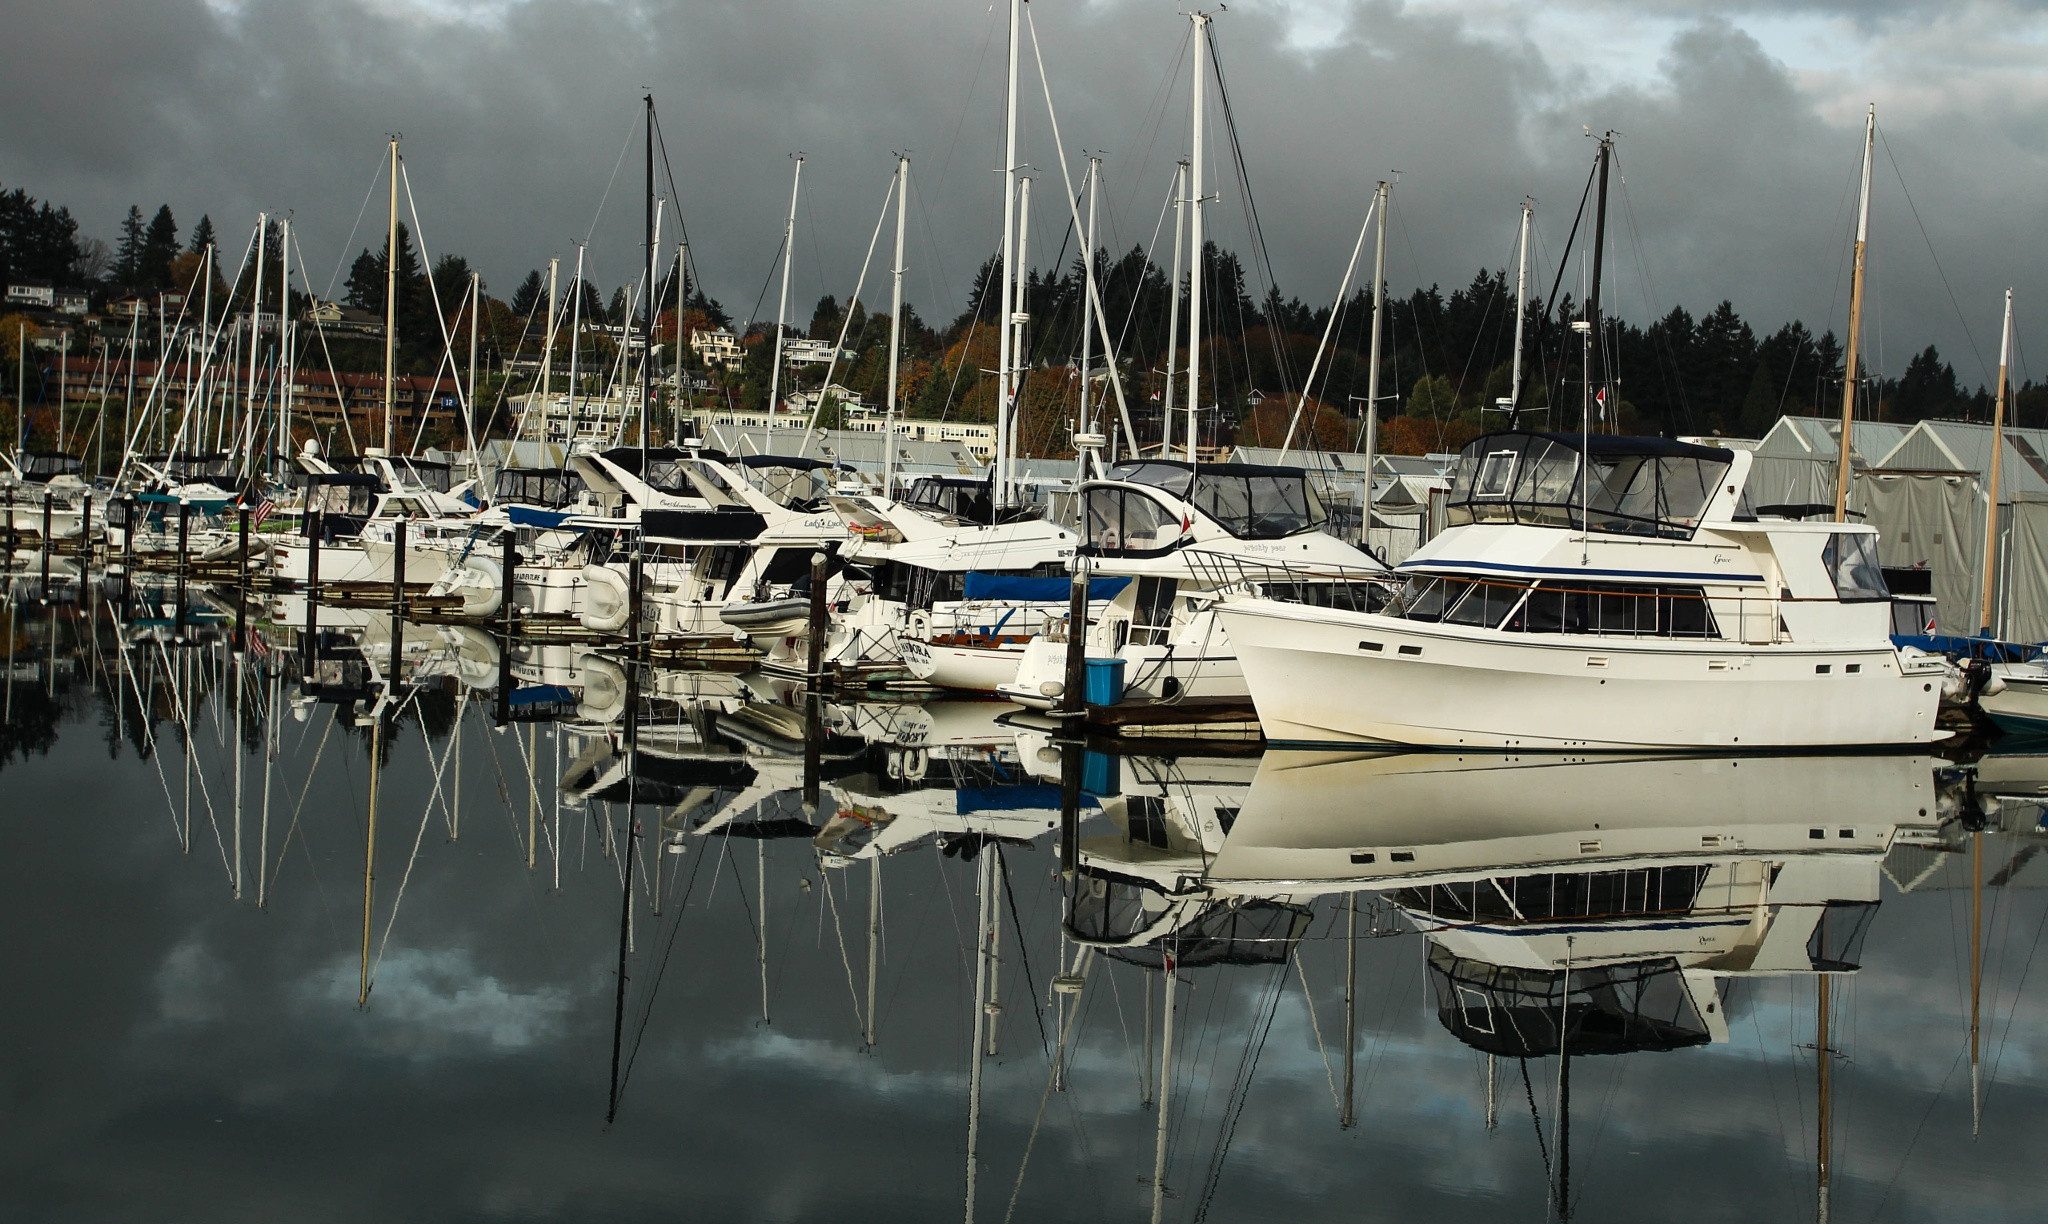 Boats, Boats, and More Boats by devynfduvall